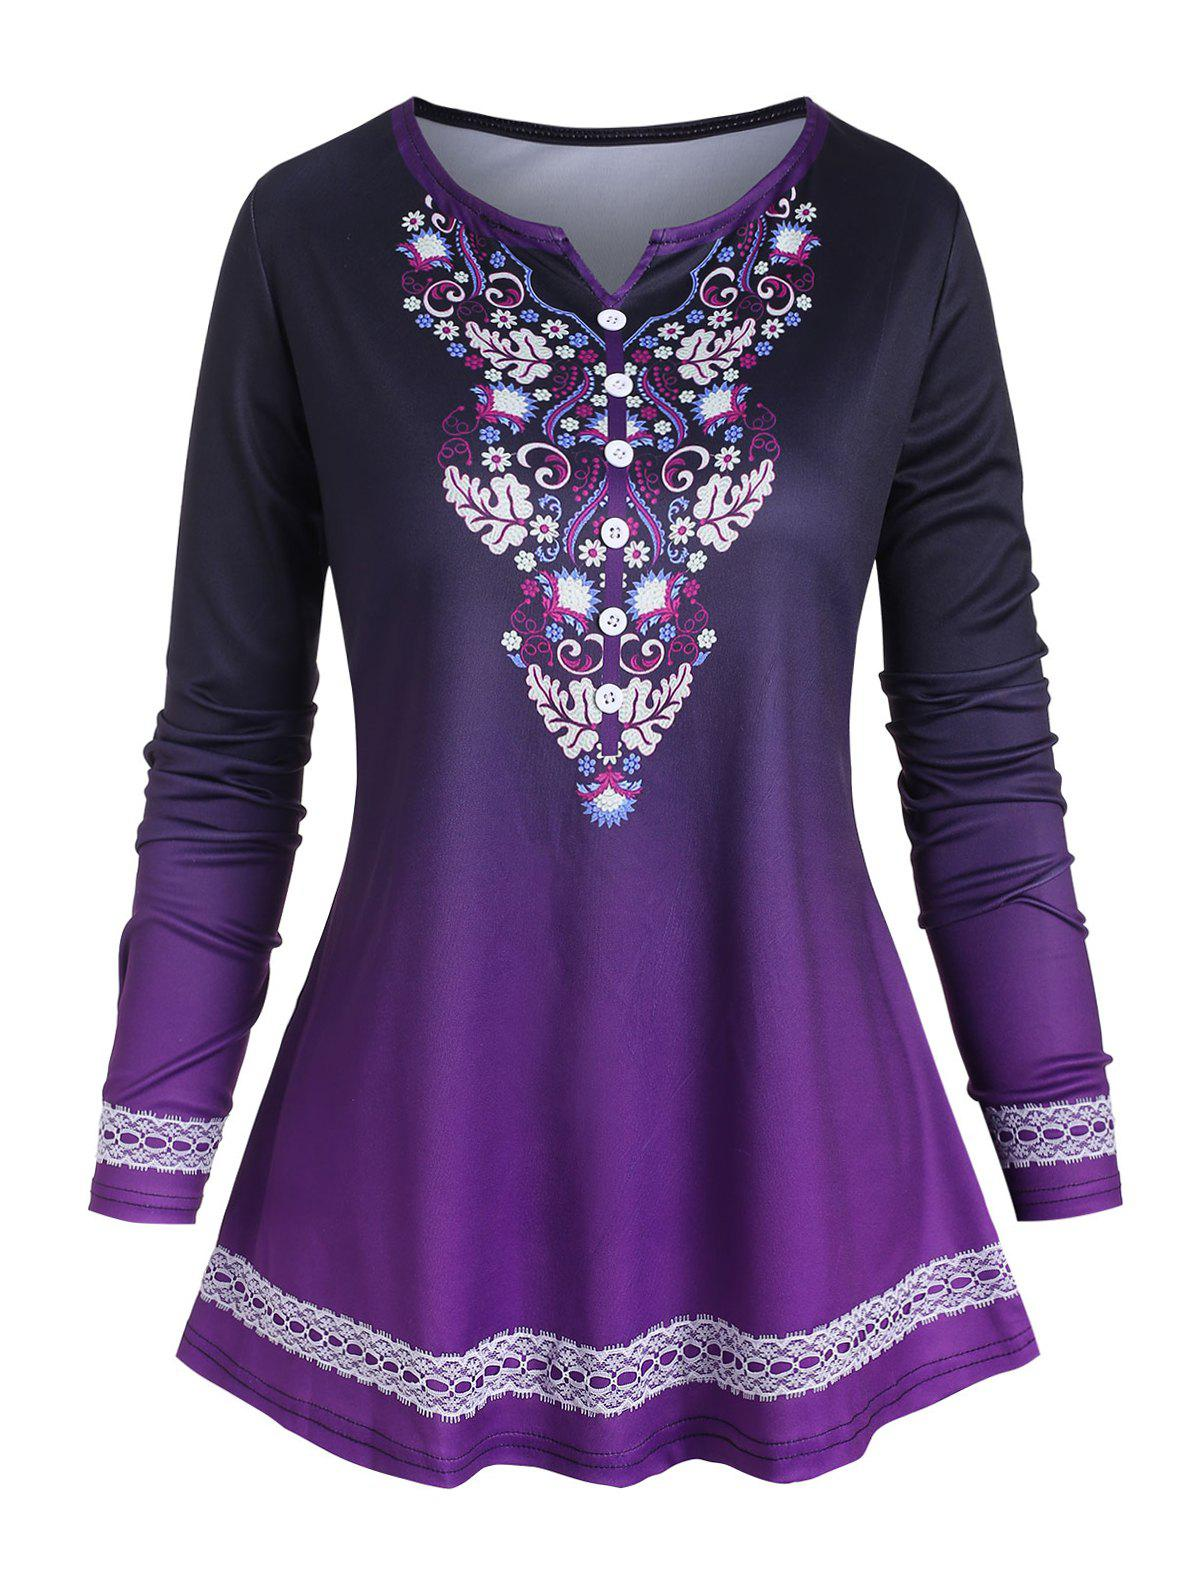 Plus Size Floral Print Lace Panel Notched T-shirt - PURPLE IRIS 4X